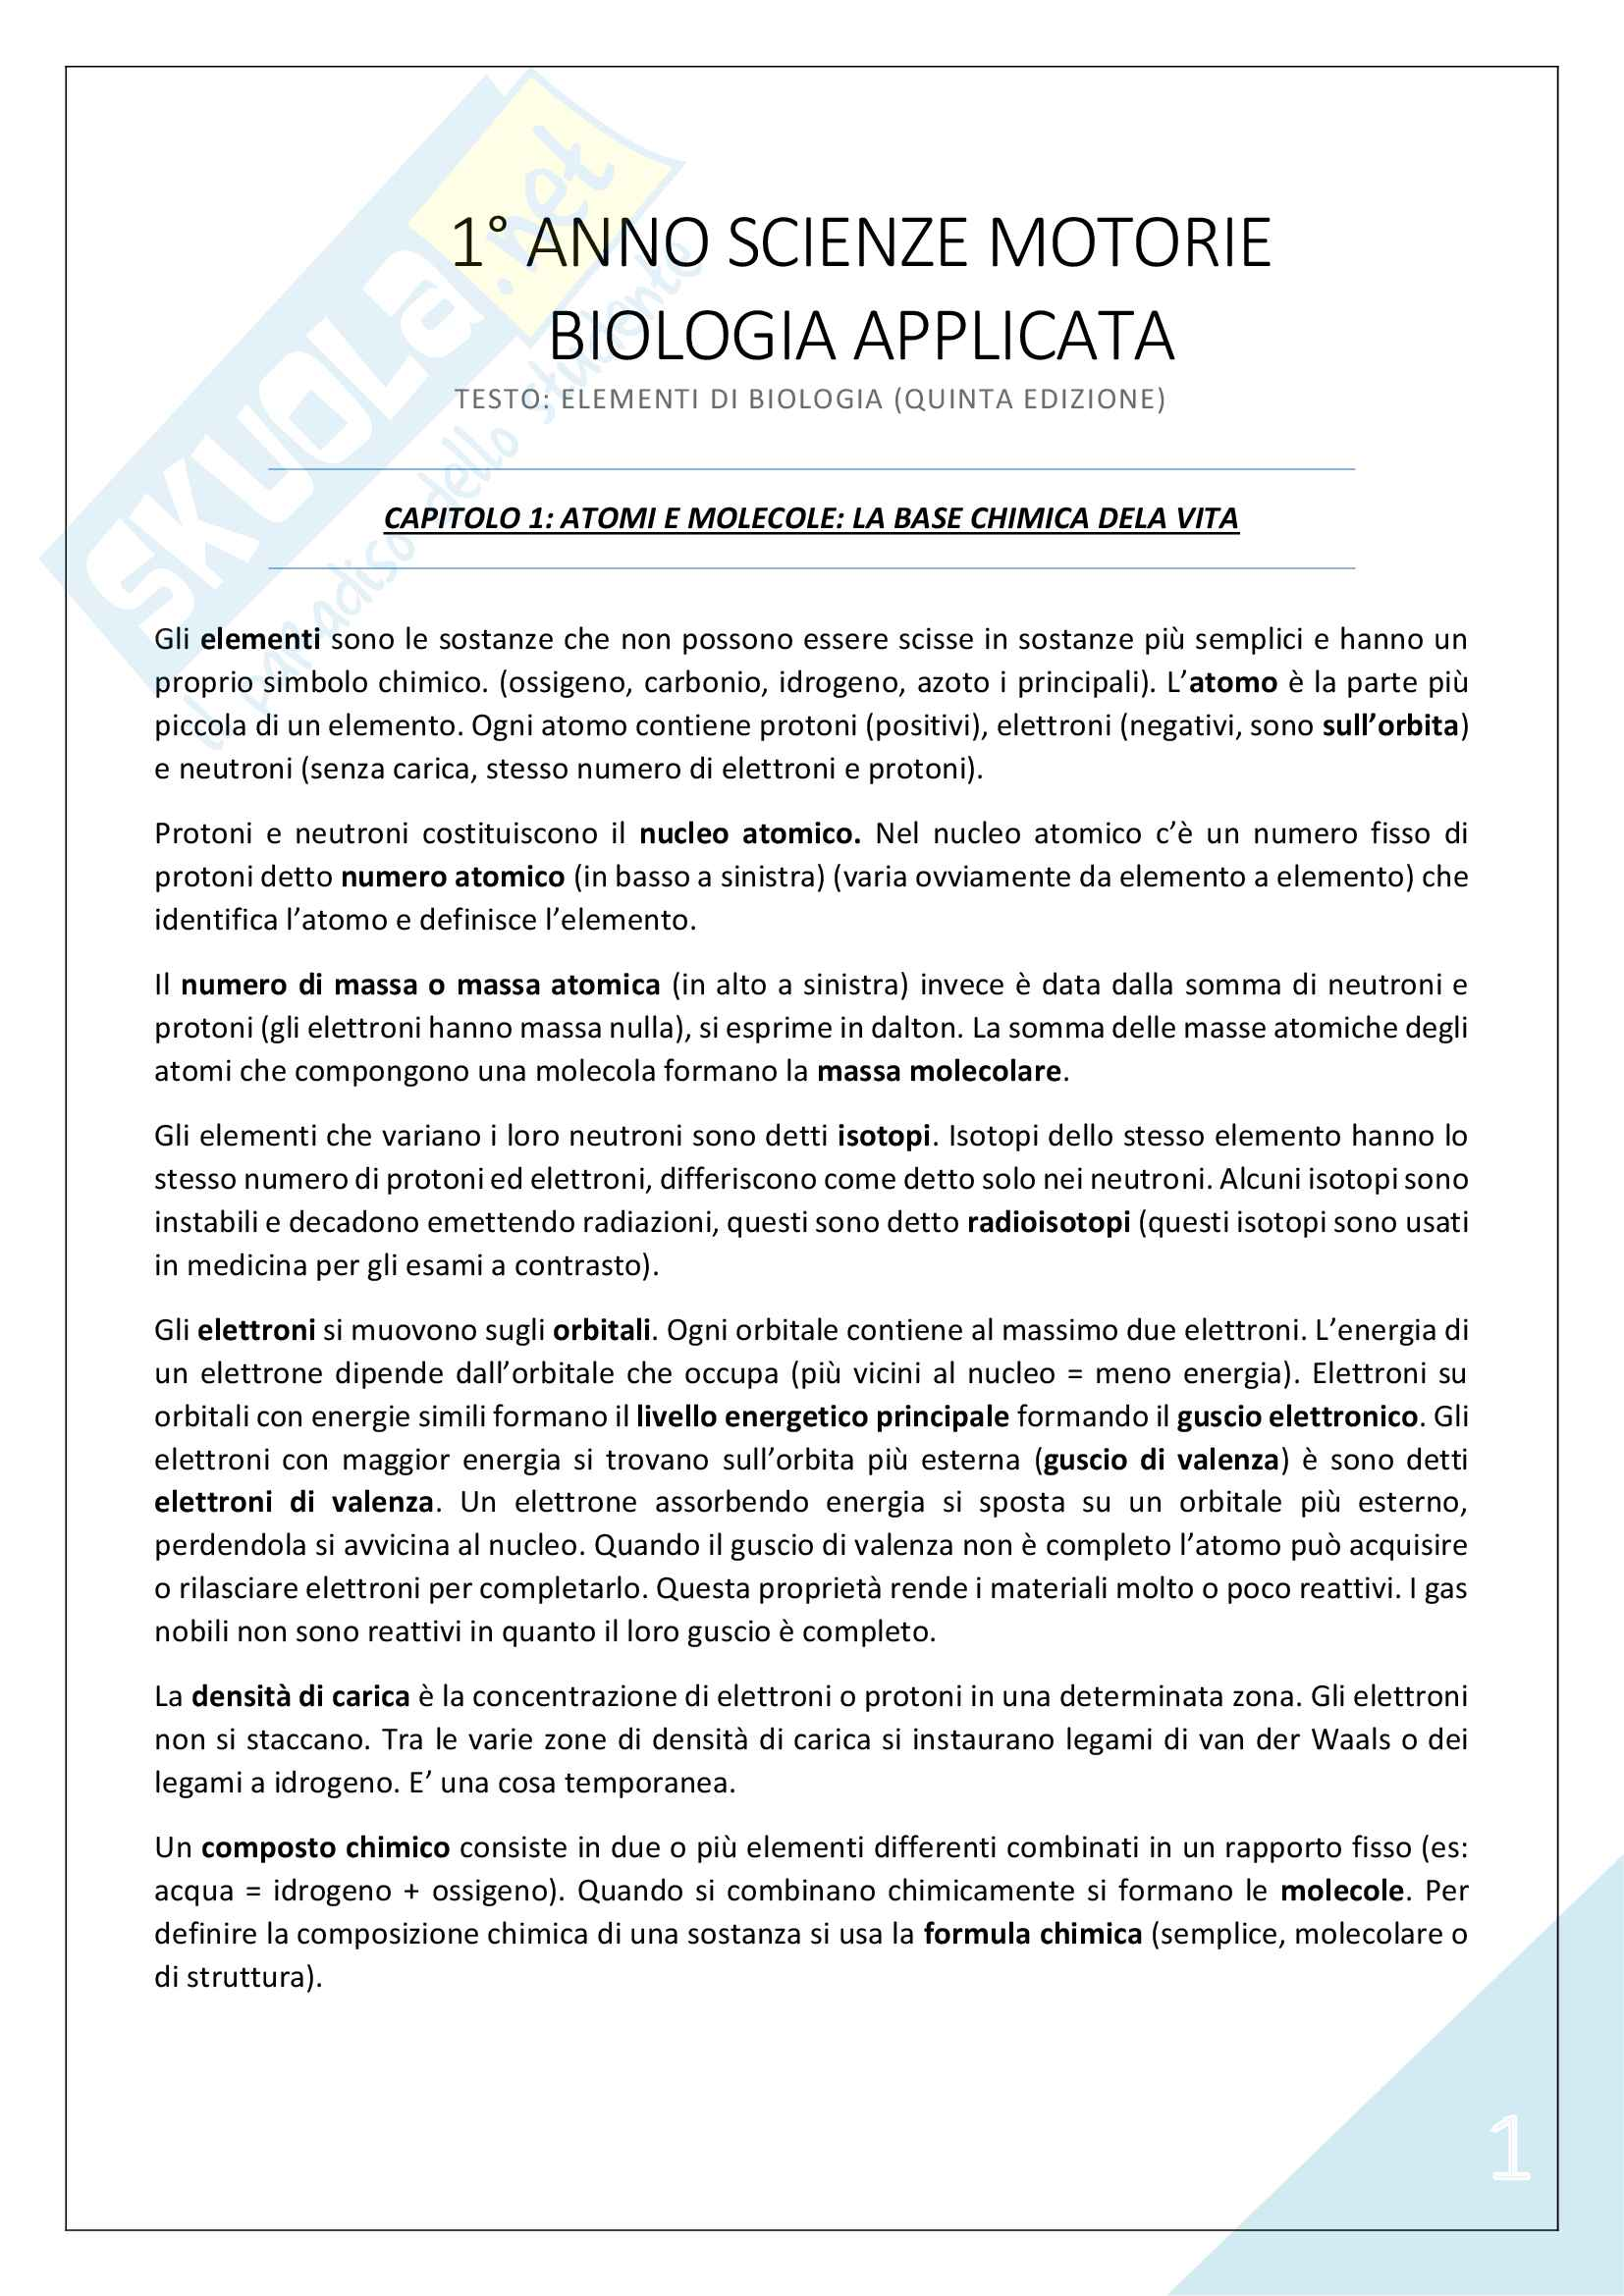 Biologia Applicata - 1° Anno Scienze Motorie